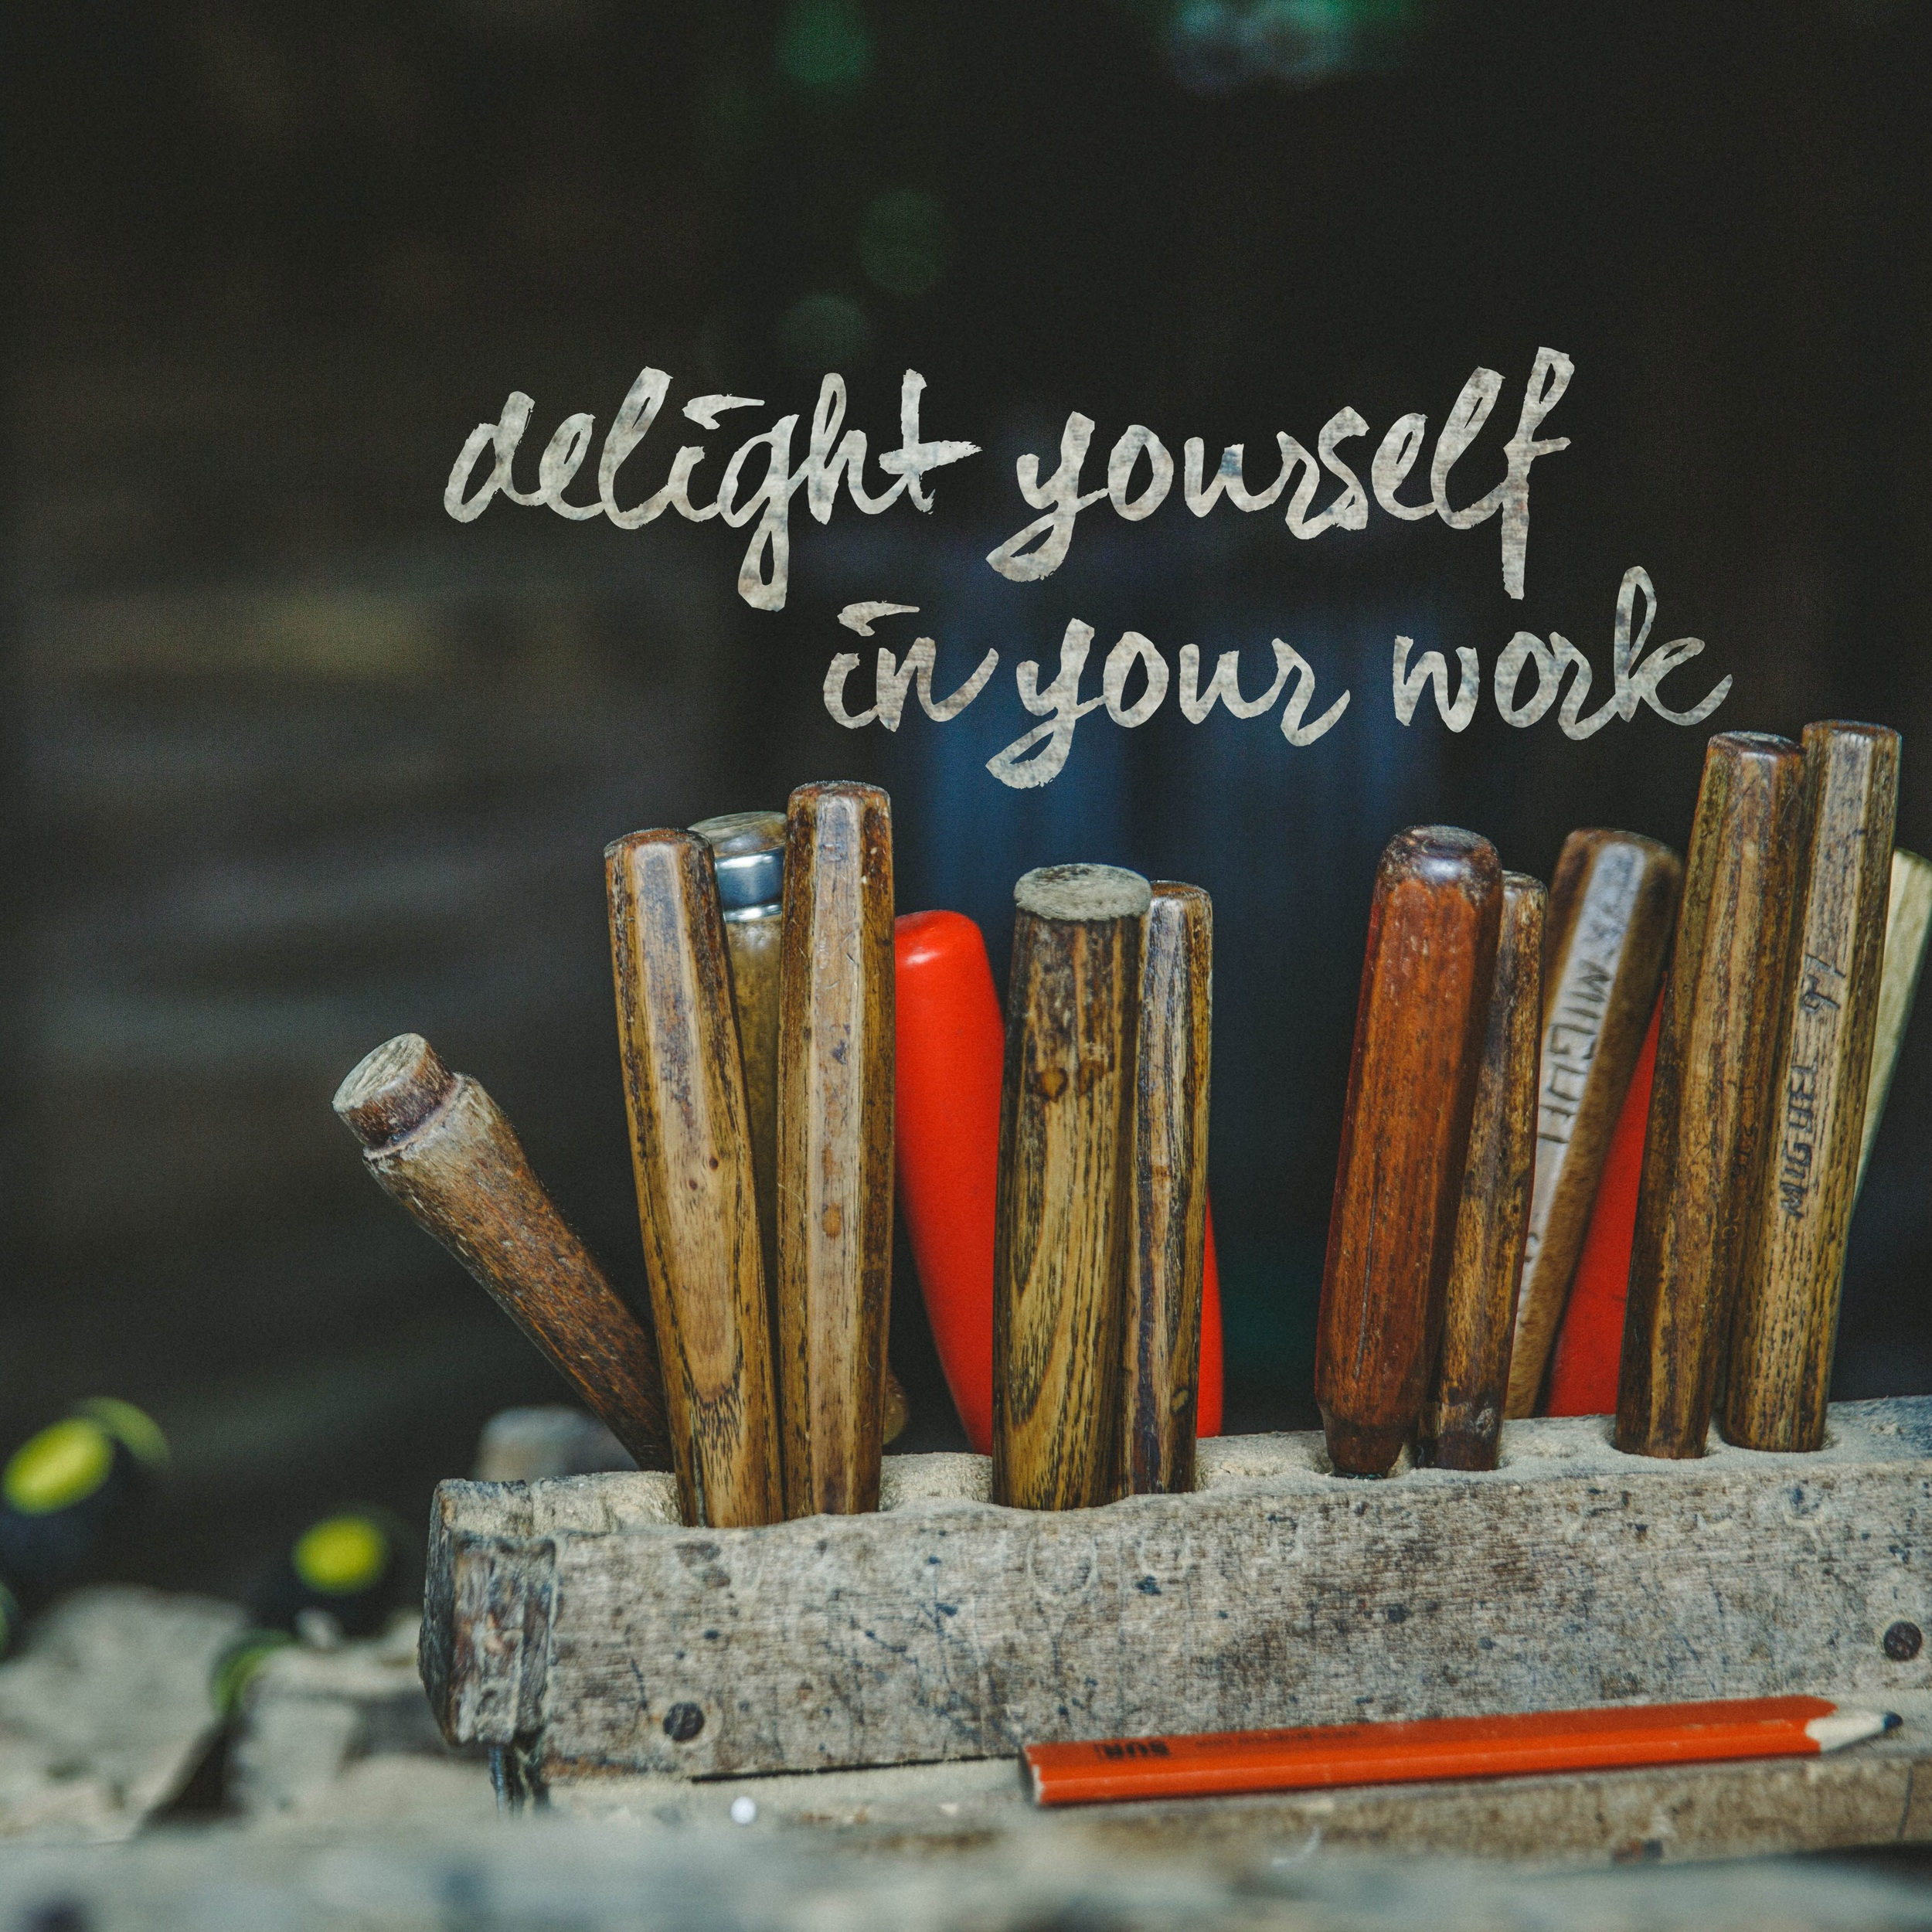 delight yourself in your work